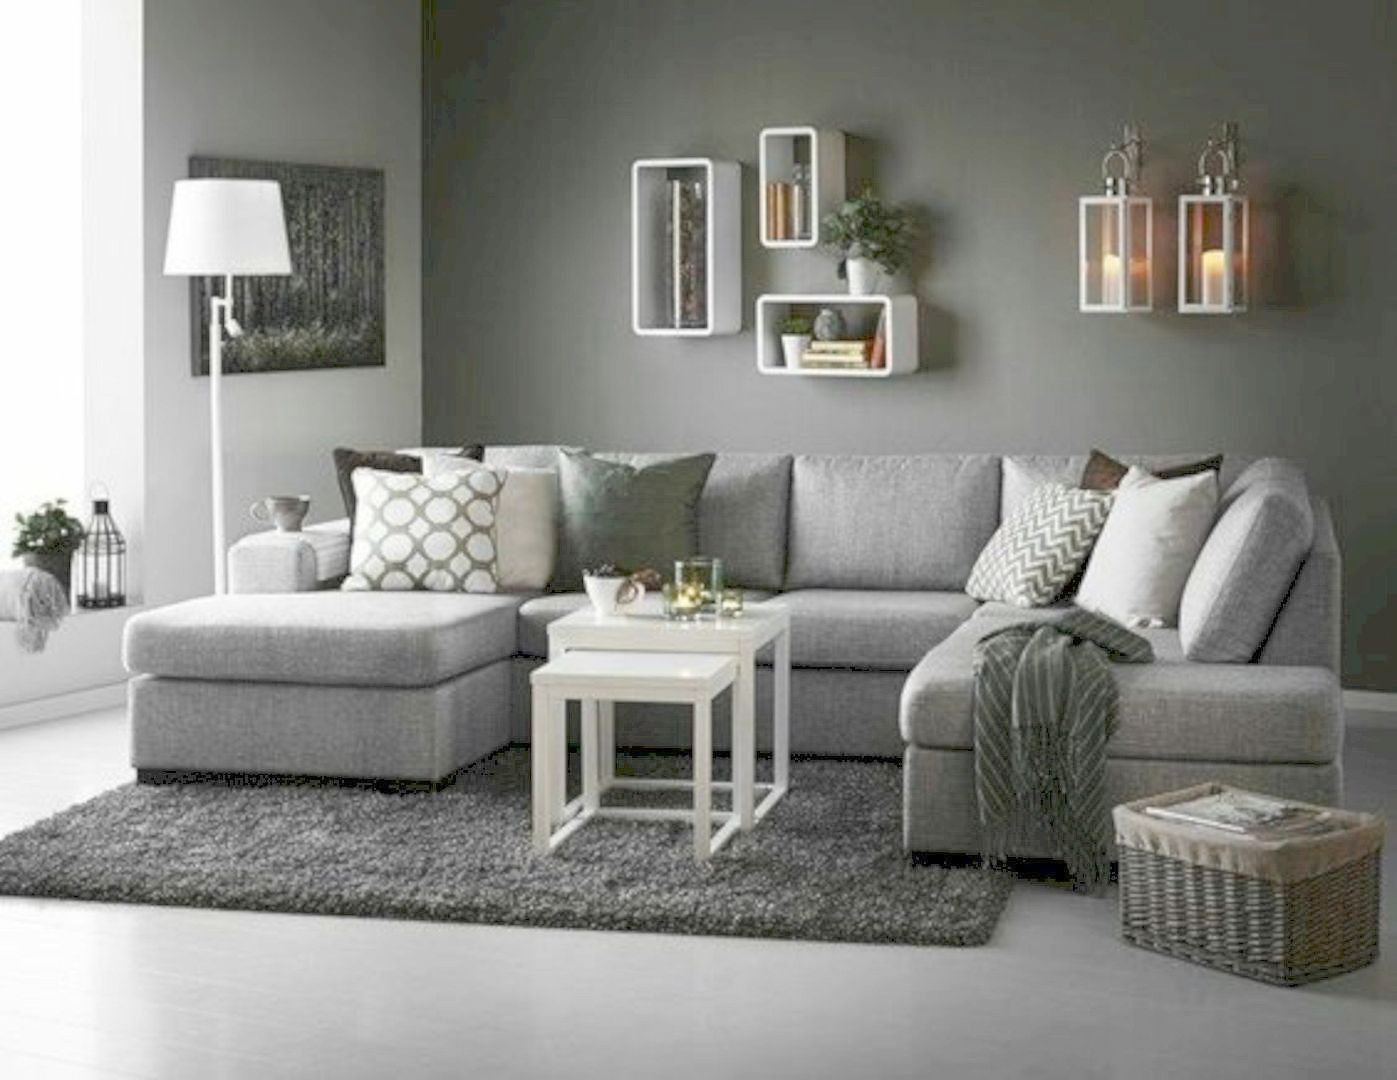 Griner Modern Coffee Table Coffee Table Coffee Table With Storage Furniture Design [ 1674 x 900 Pixel ]